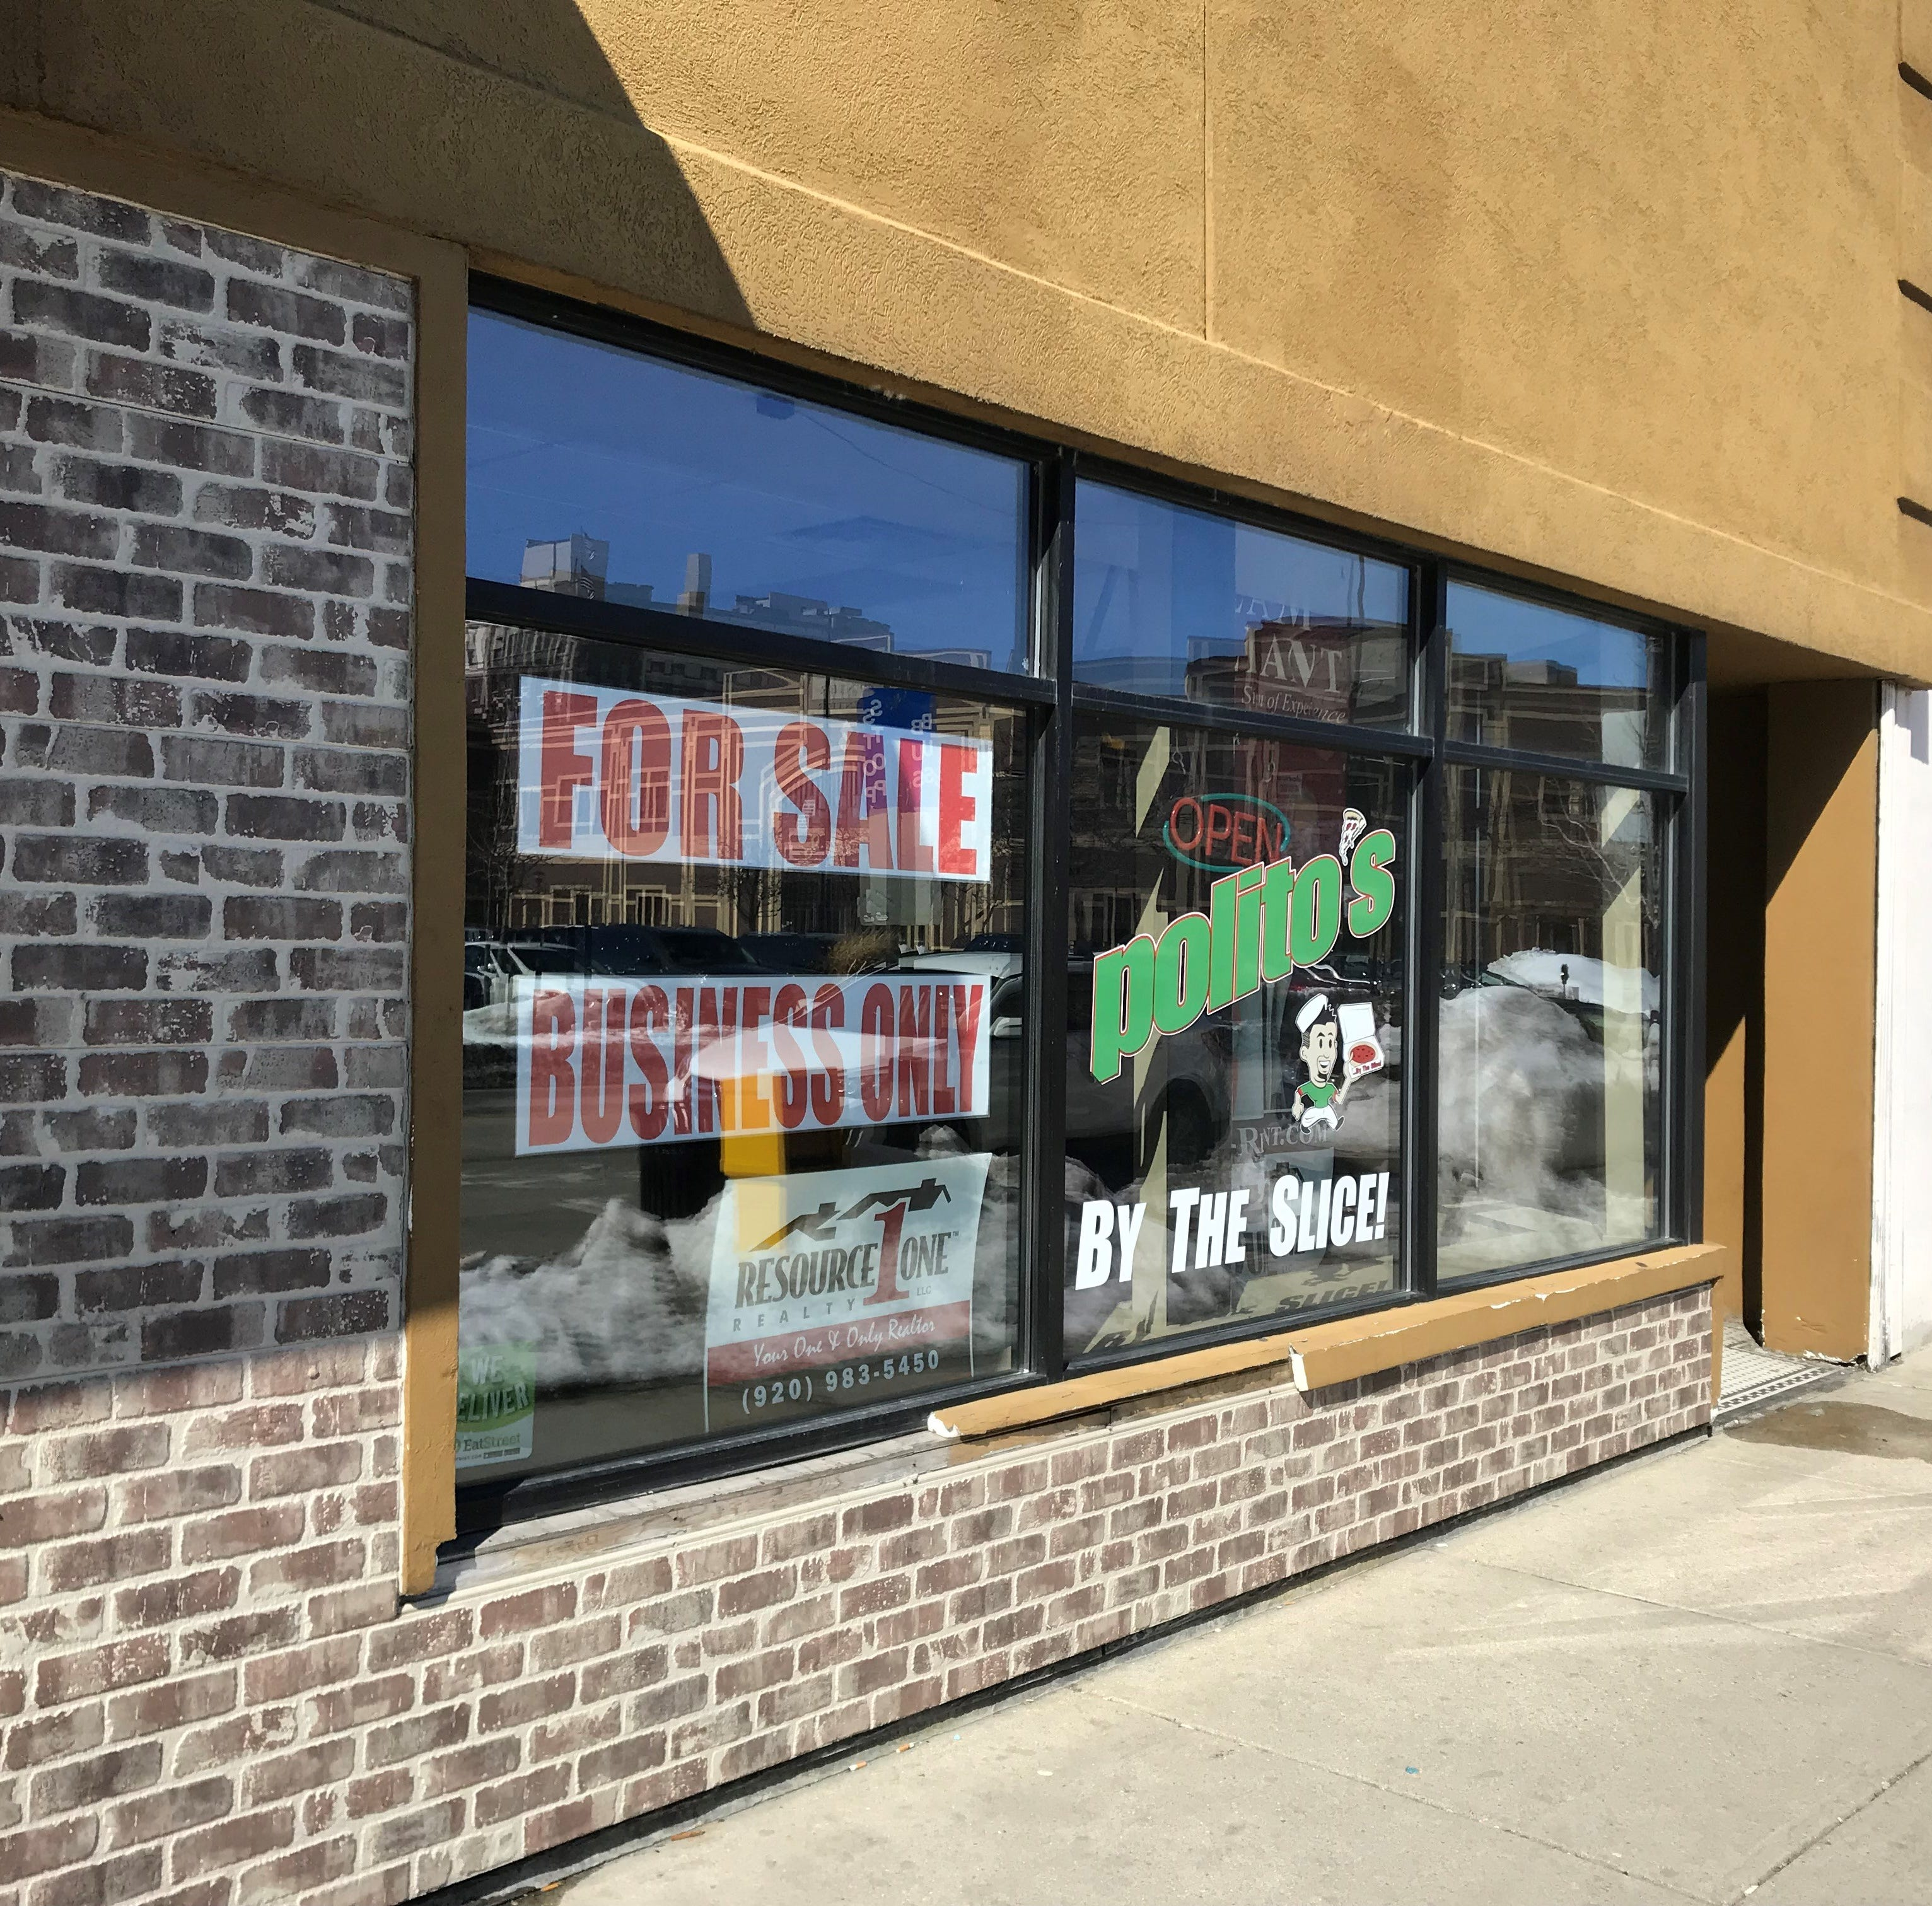 Streetwise: Downtown Green Bay Polito's has closed